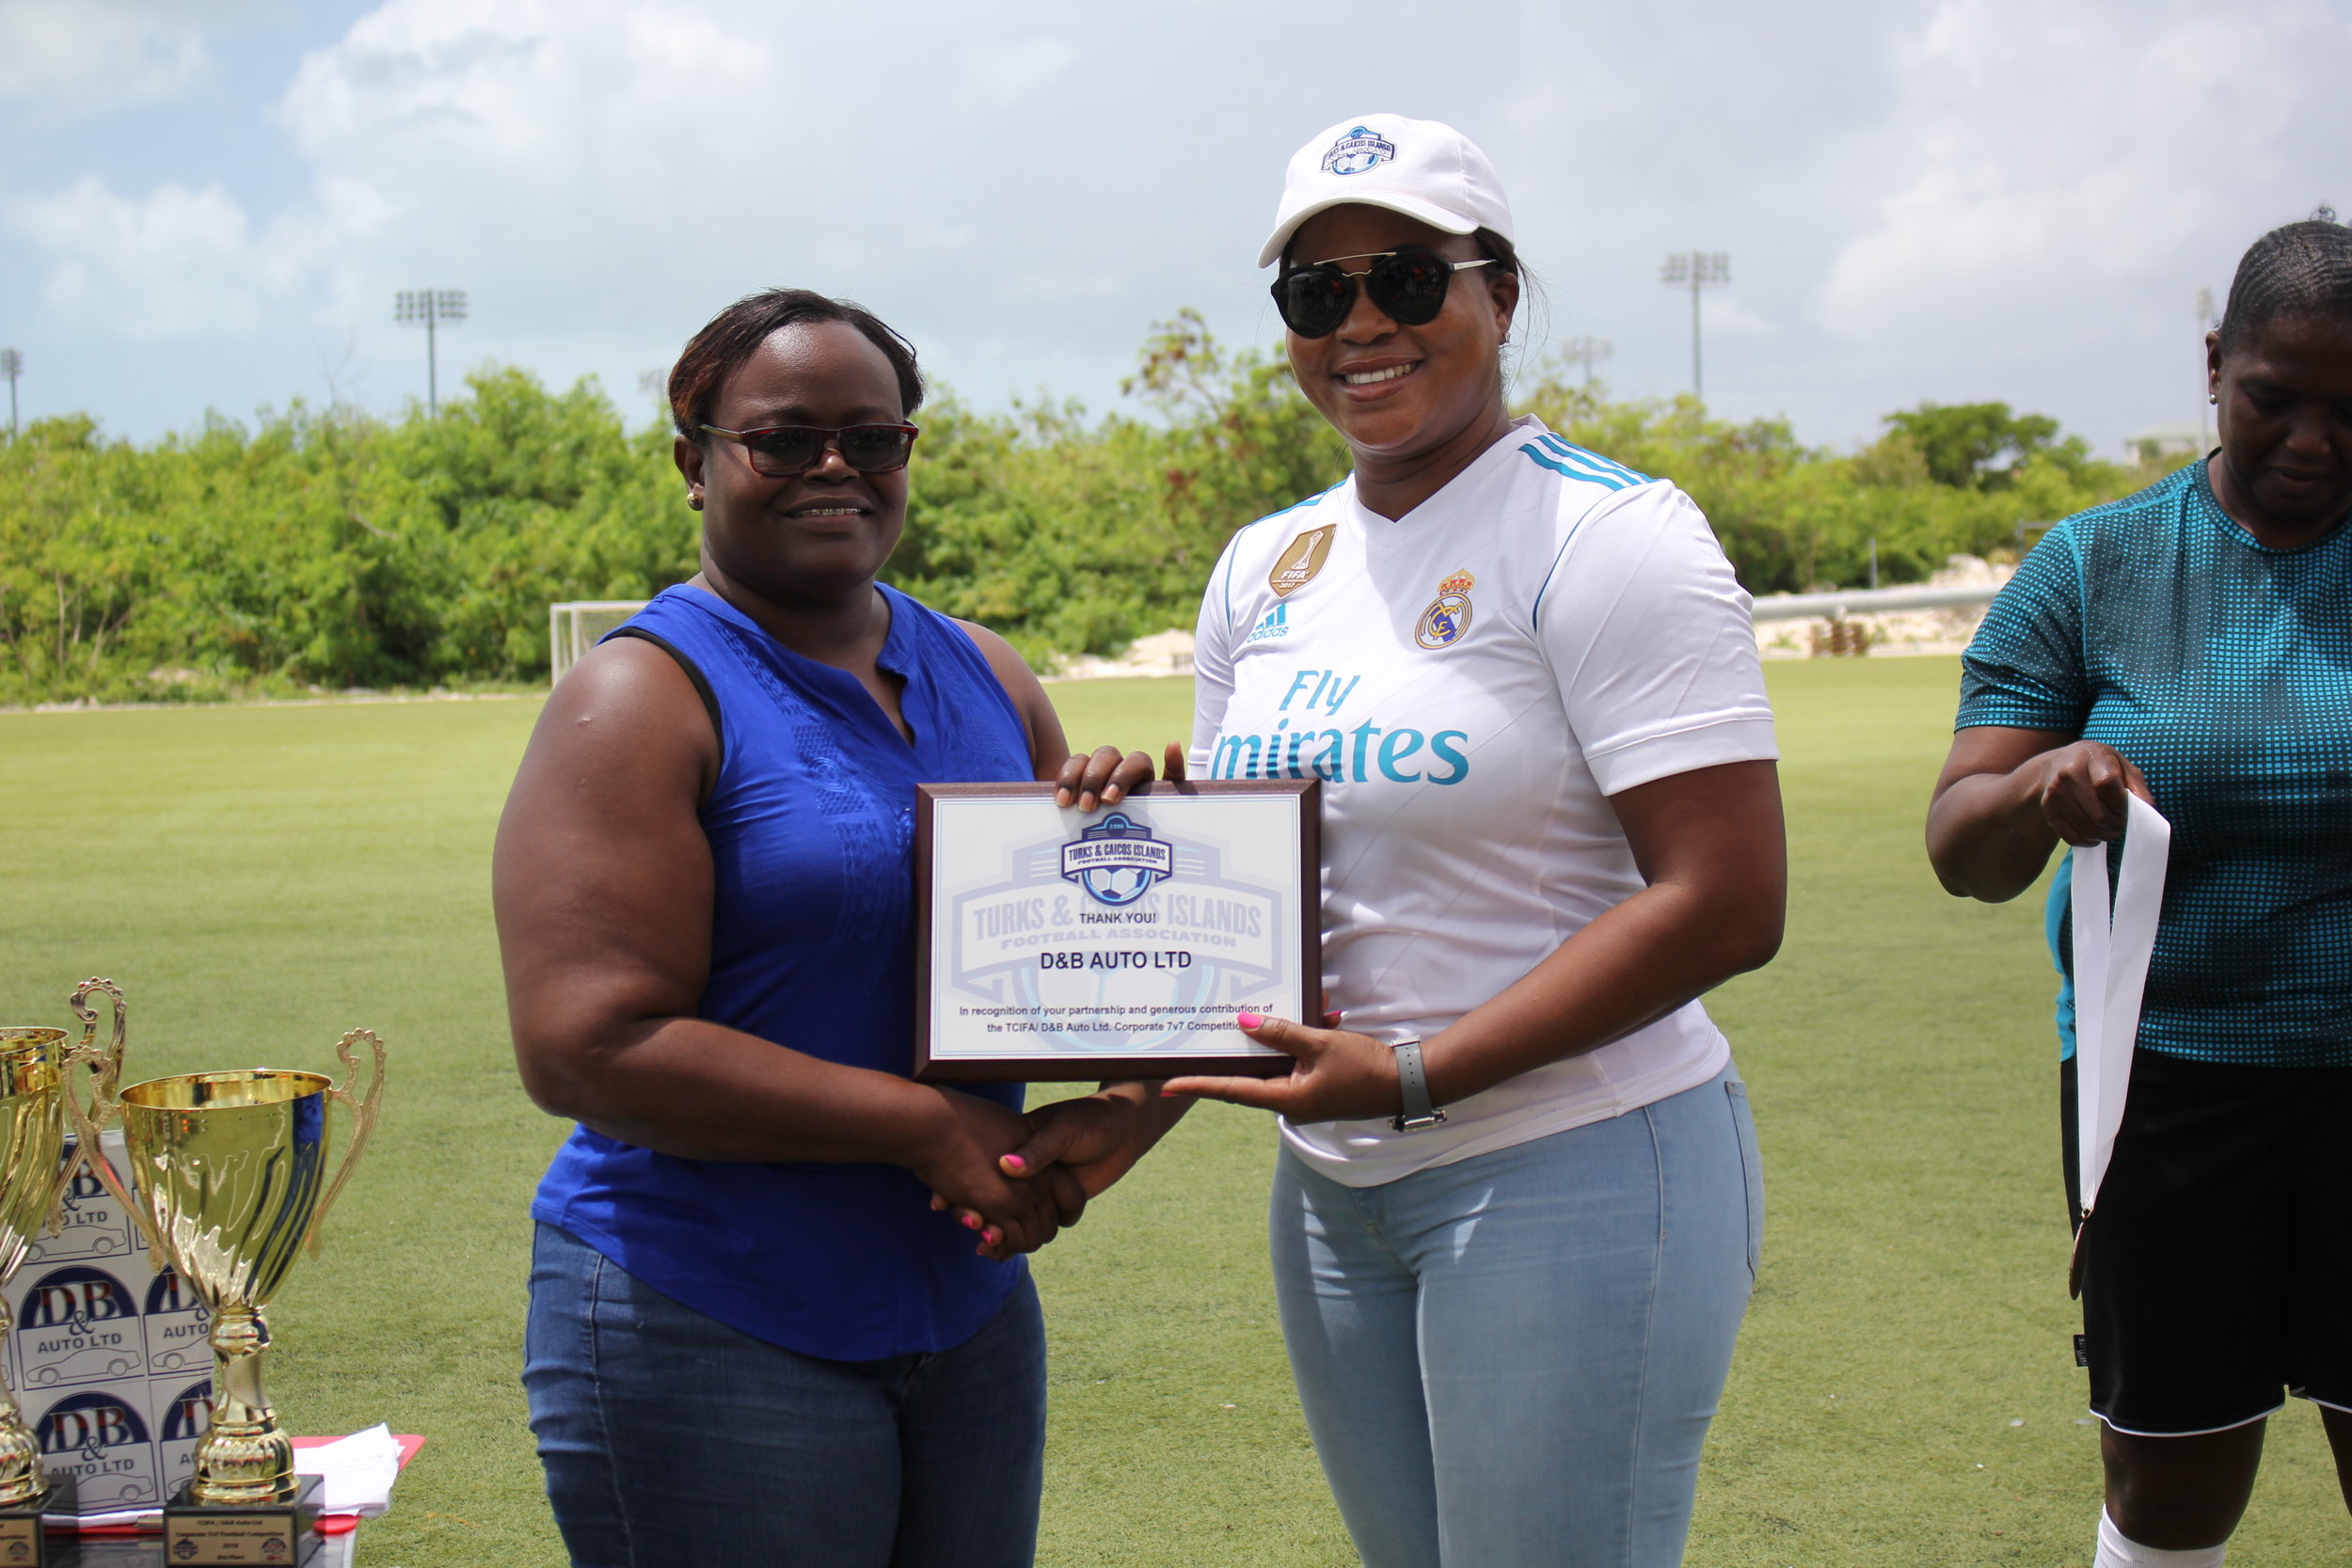 Brittannya Daley of D&B auto presented with a plaque by TCIFA President Sonia Fulford